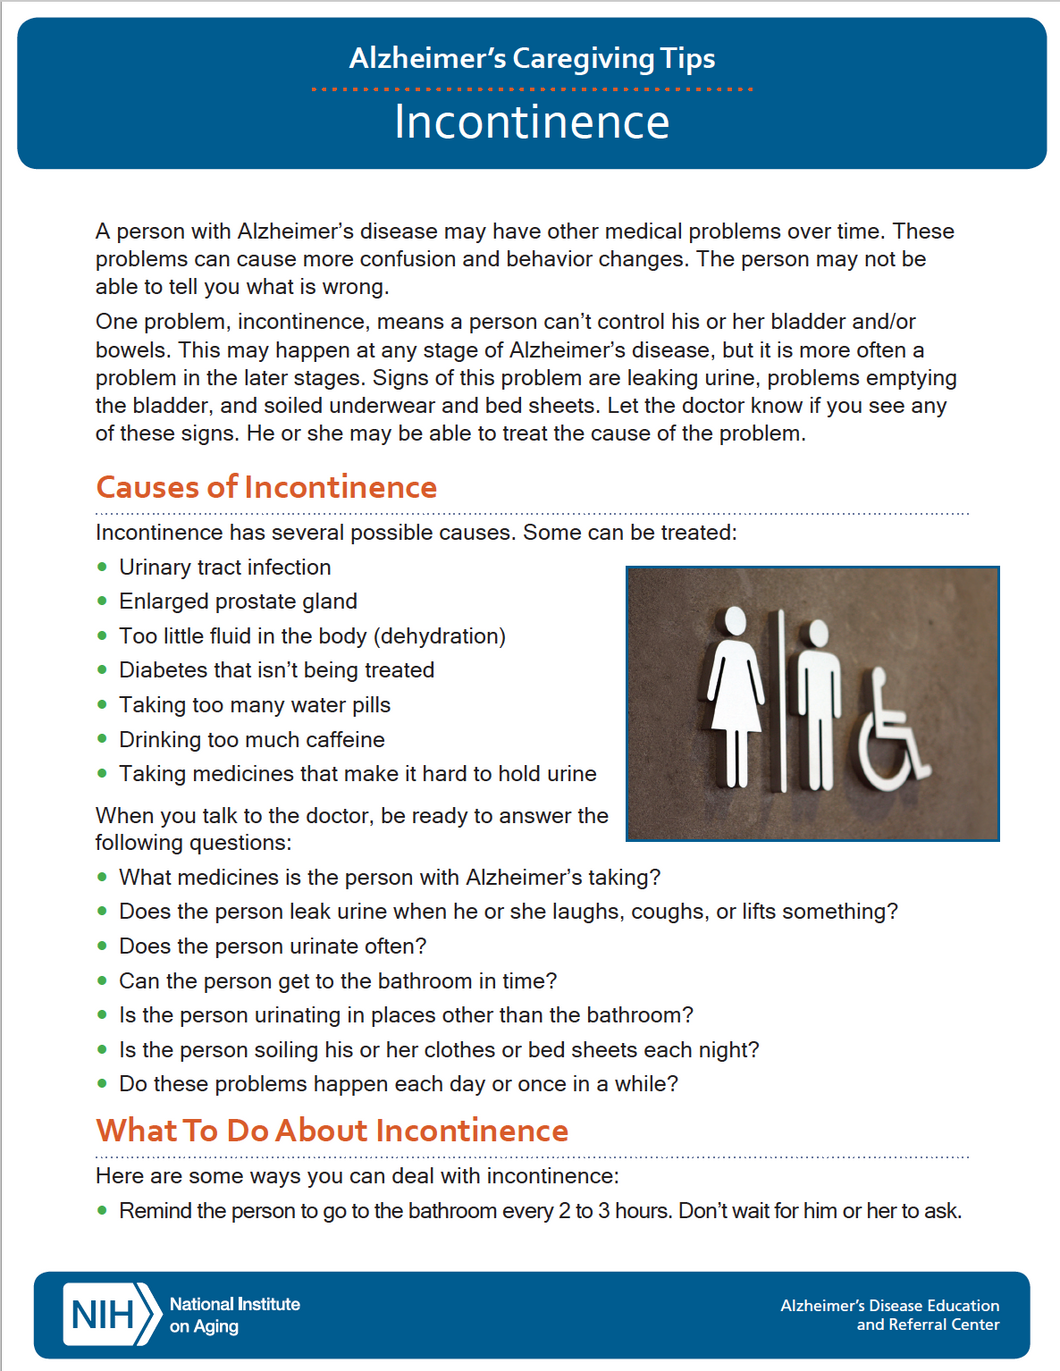 Incontinence: Alzheimer's Caregiving Tips (NIA)